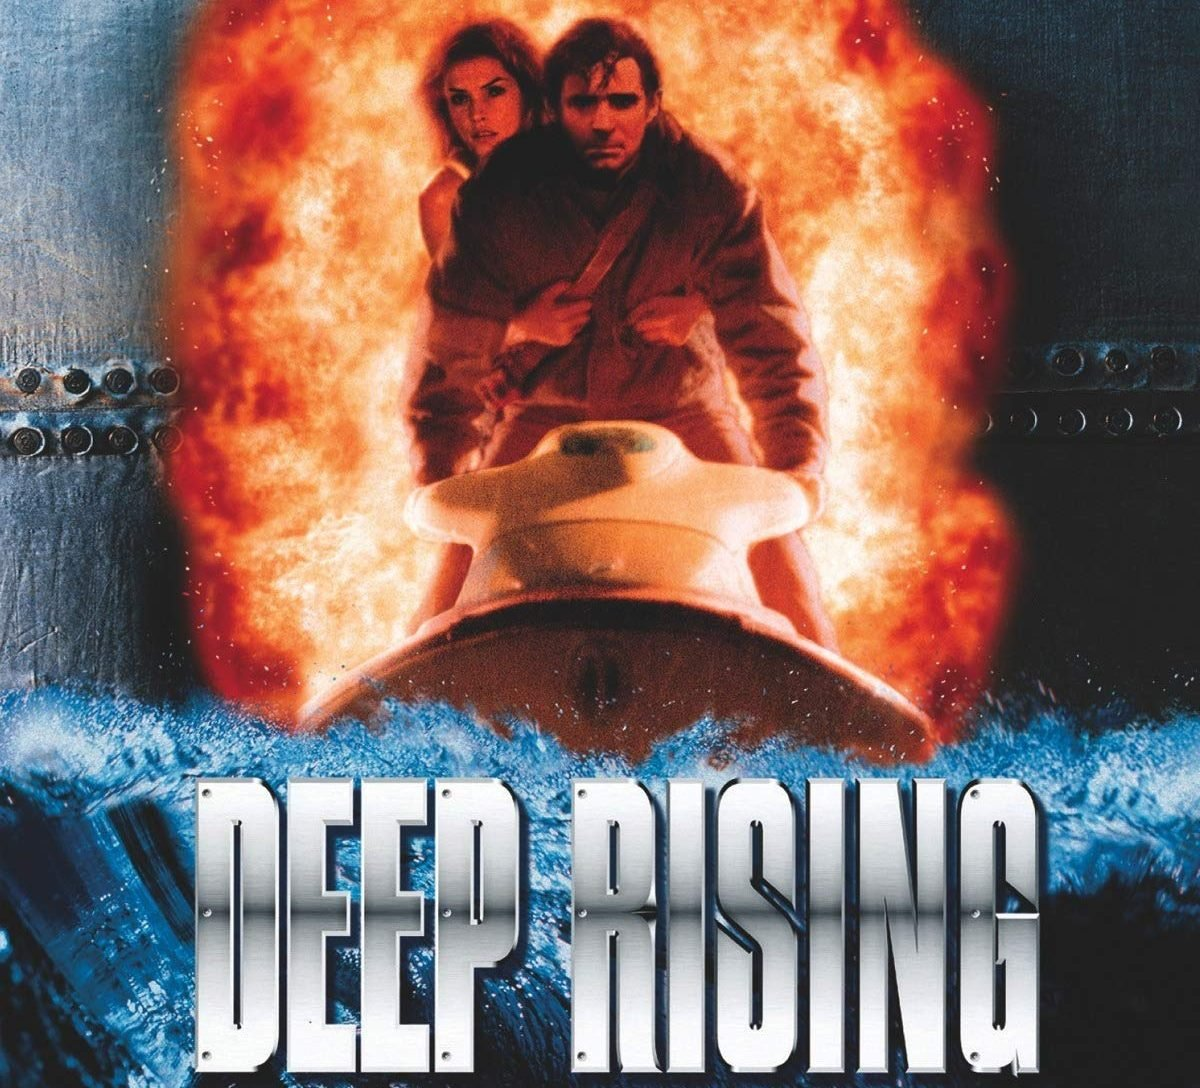 81lJdzdRwiL. RI e1620655366694 25 Things You Didn't Know About 1998's 'King Kong Prequel' Deep Rising